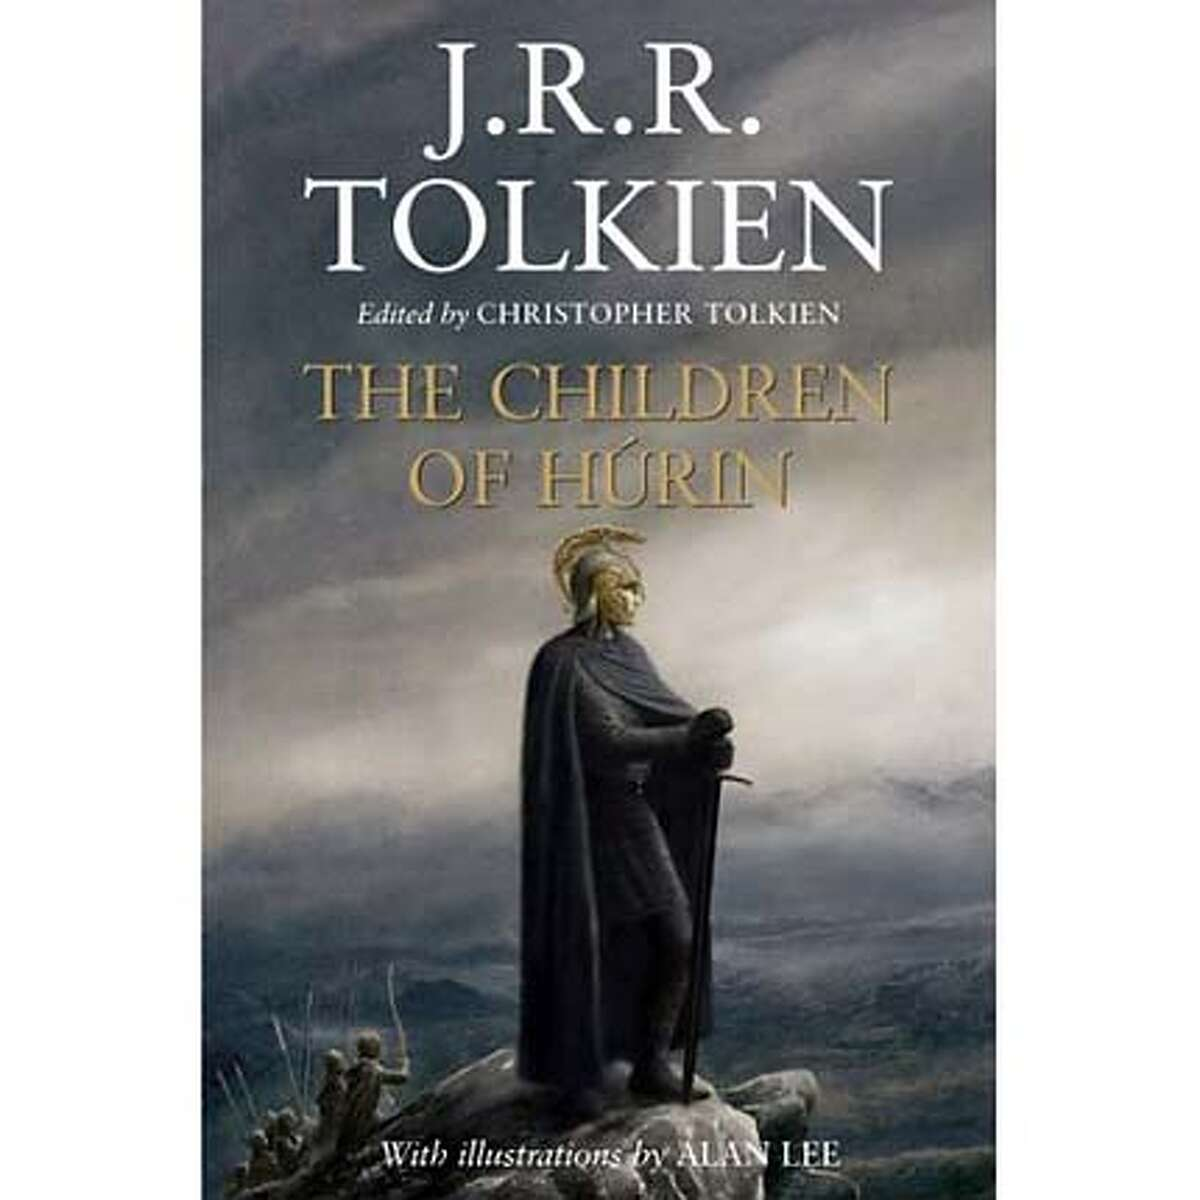 """""""The Children of H�rin"""" by J.R.R. Tolkien, edited by Christopher Tolkien(Houghton Mifflin; 313 pages; $26)"""